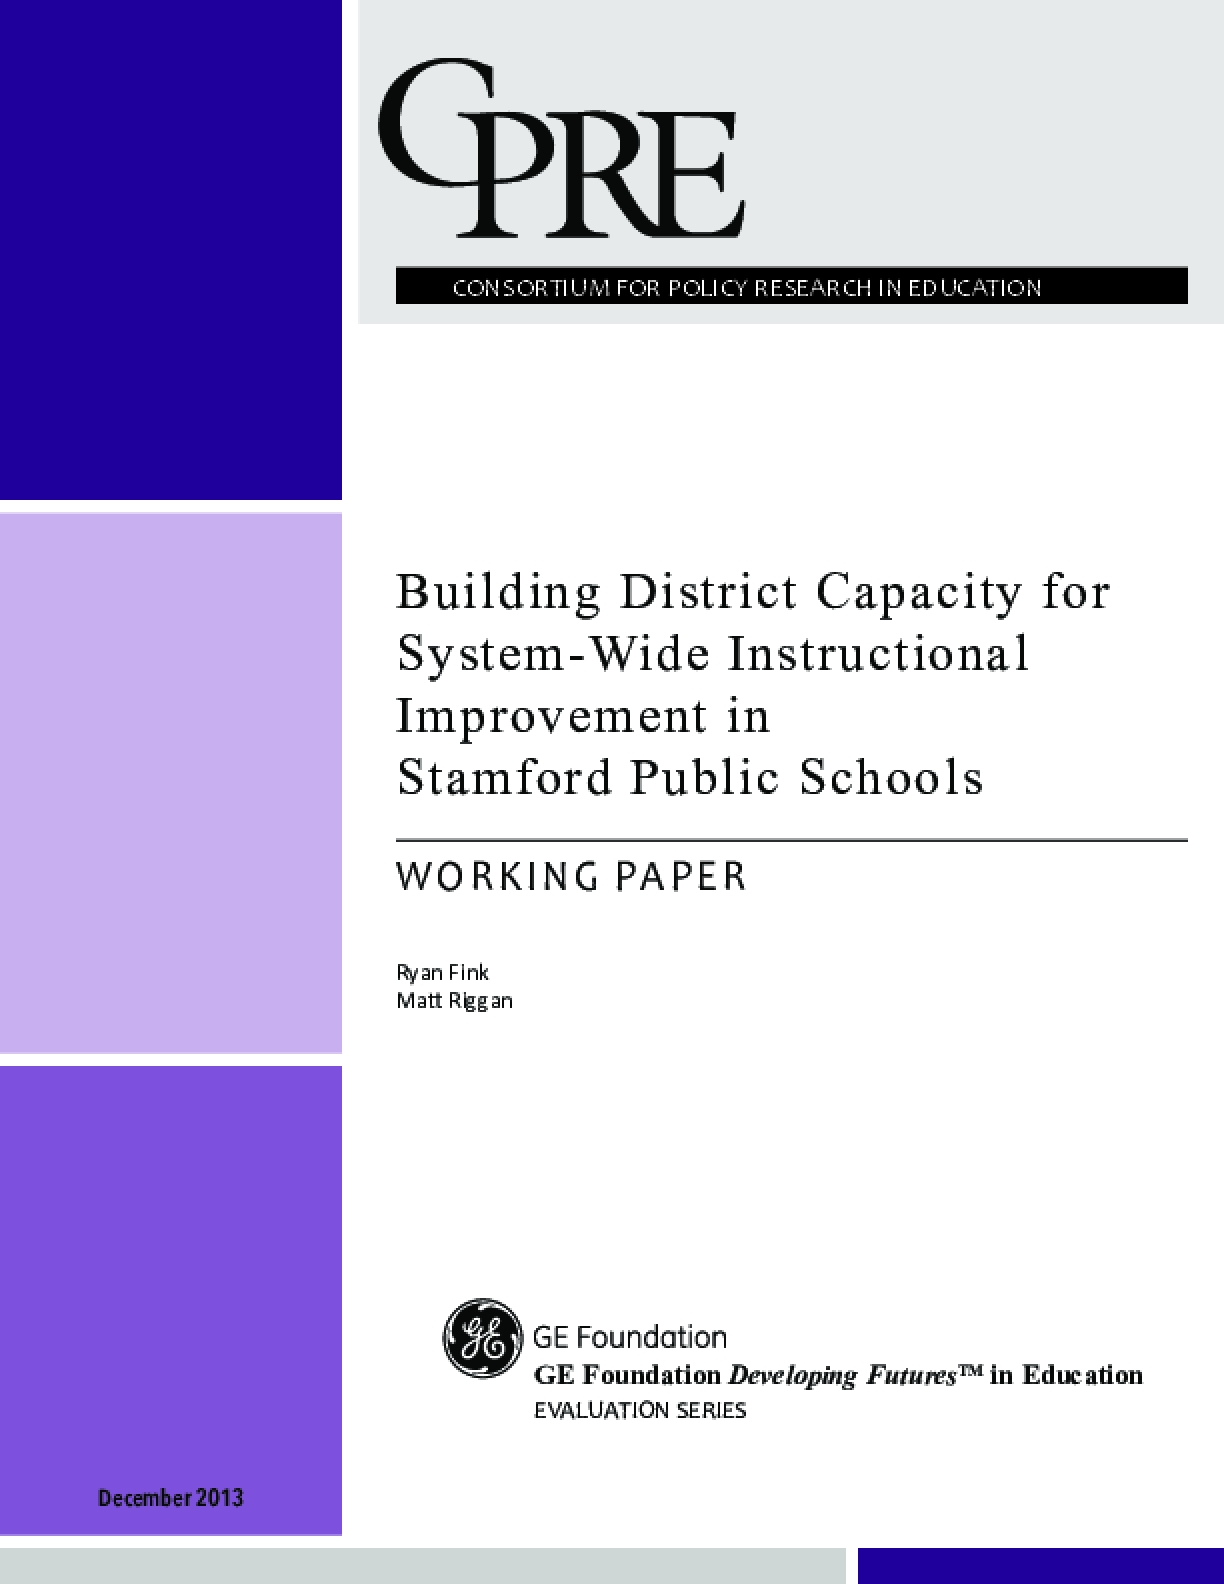 Building District Capacity for System-Wide Instructional Improvement in Stamford Public Schools